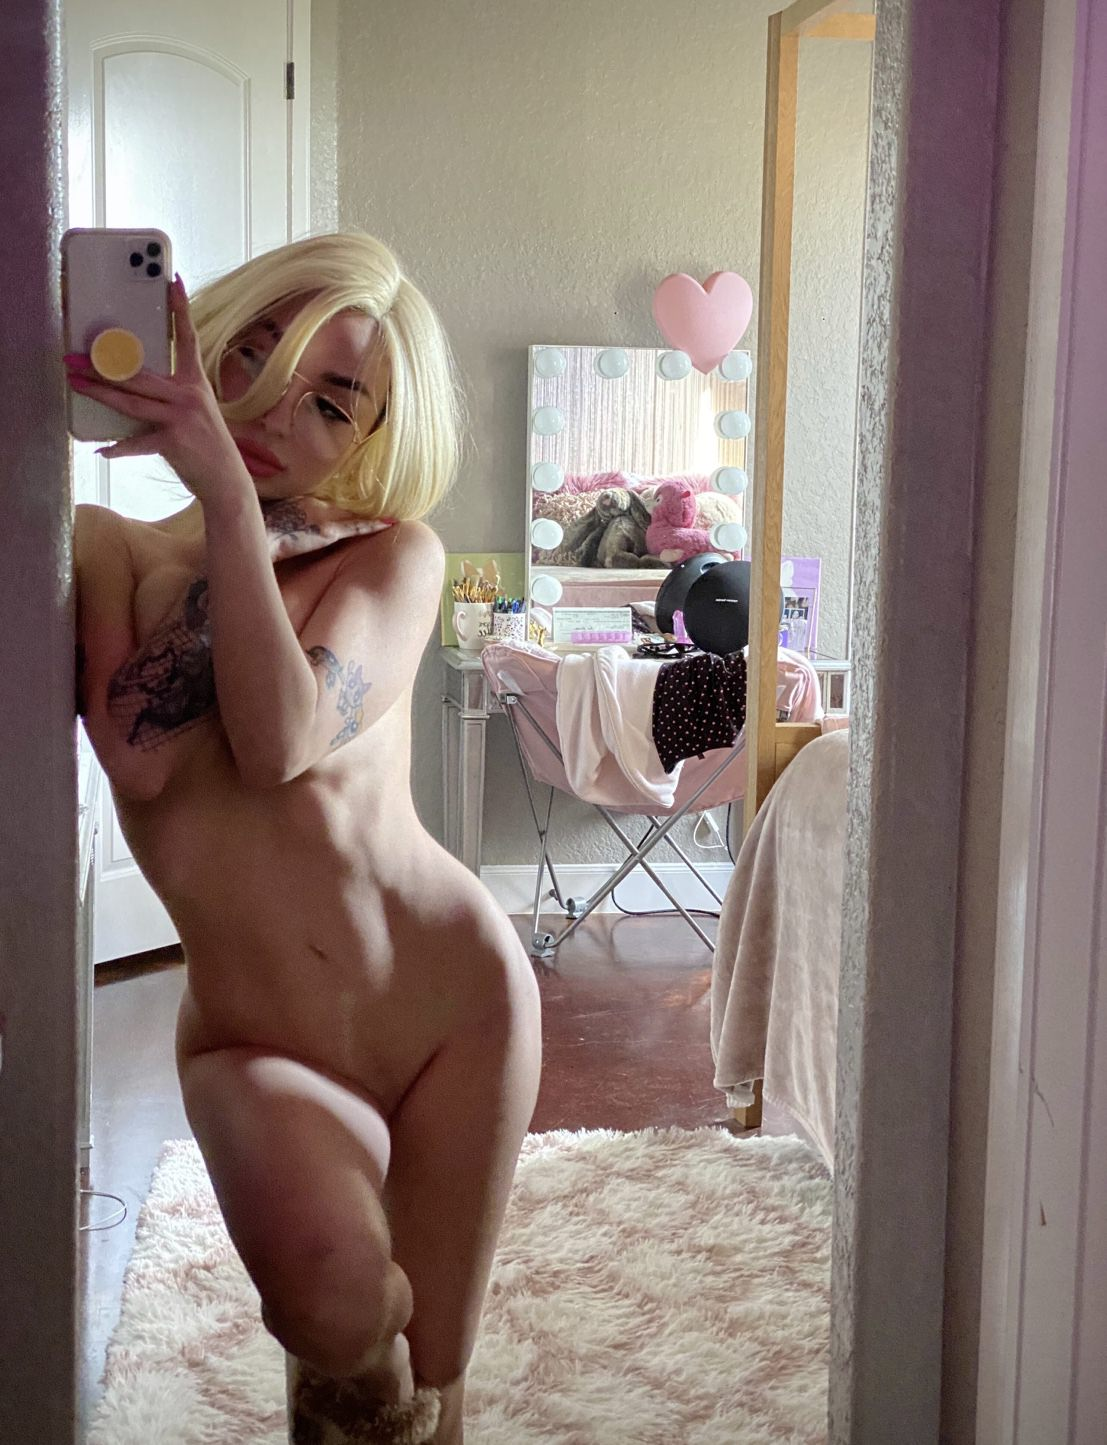 FULL VIDEO: Babefuzz Nude Onlyfans Leaked!